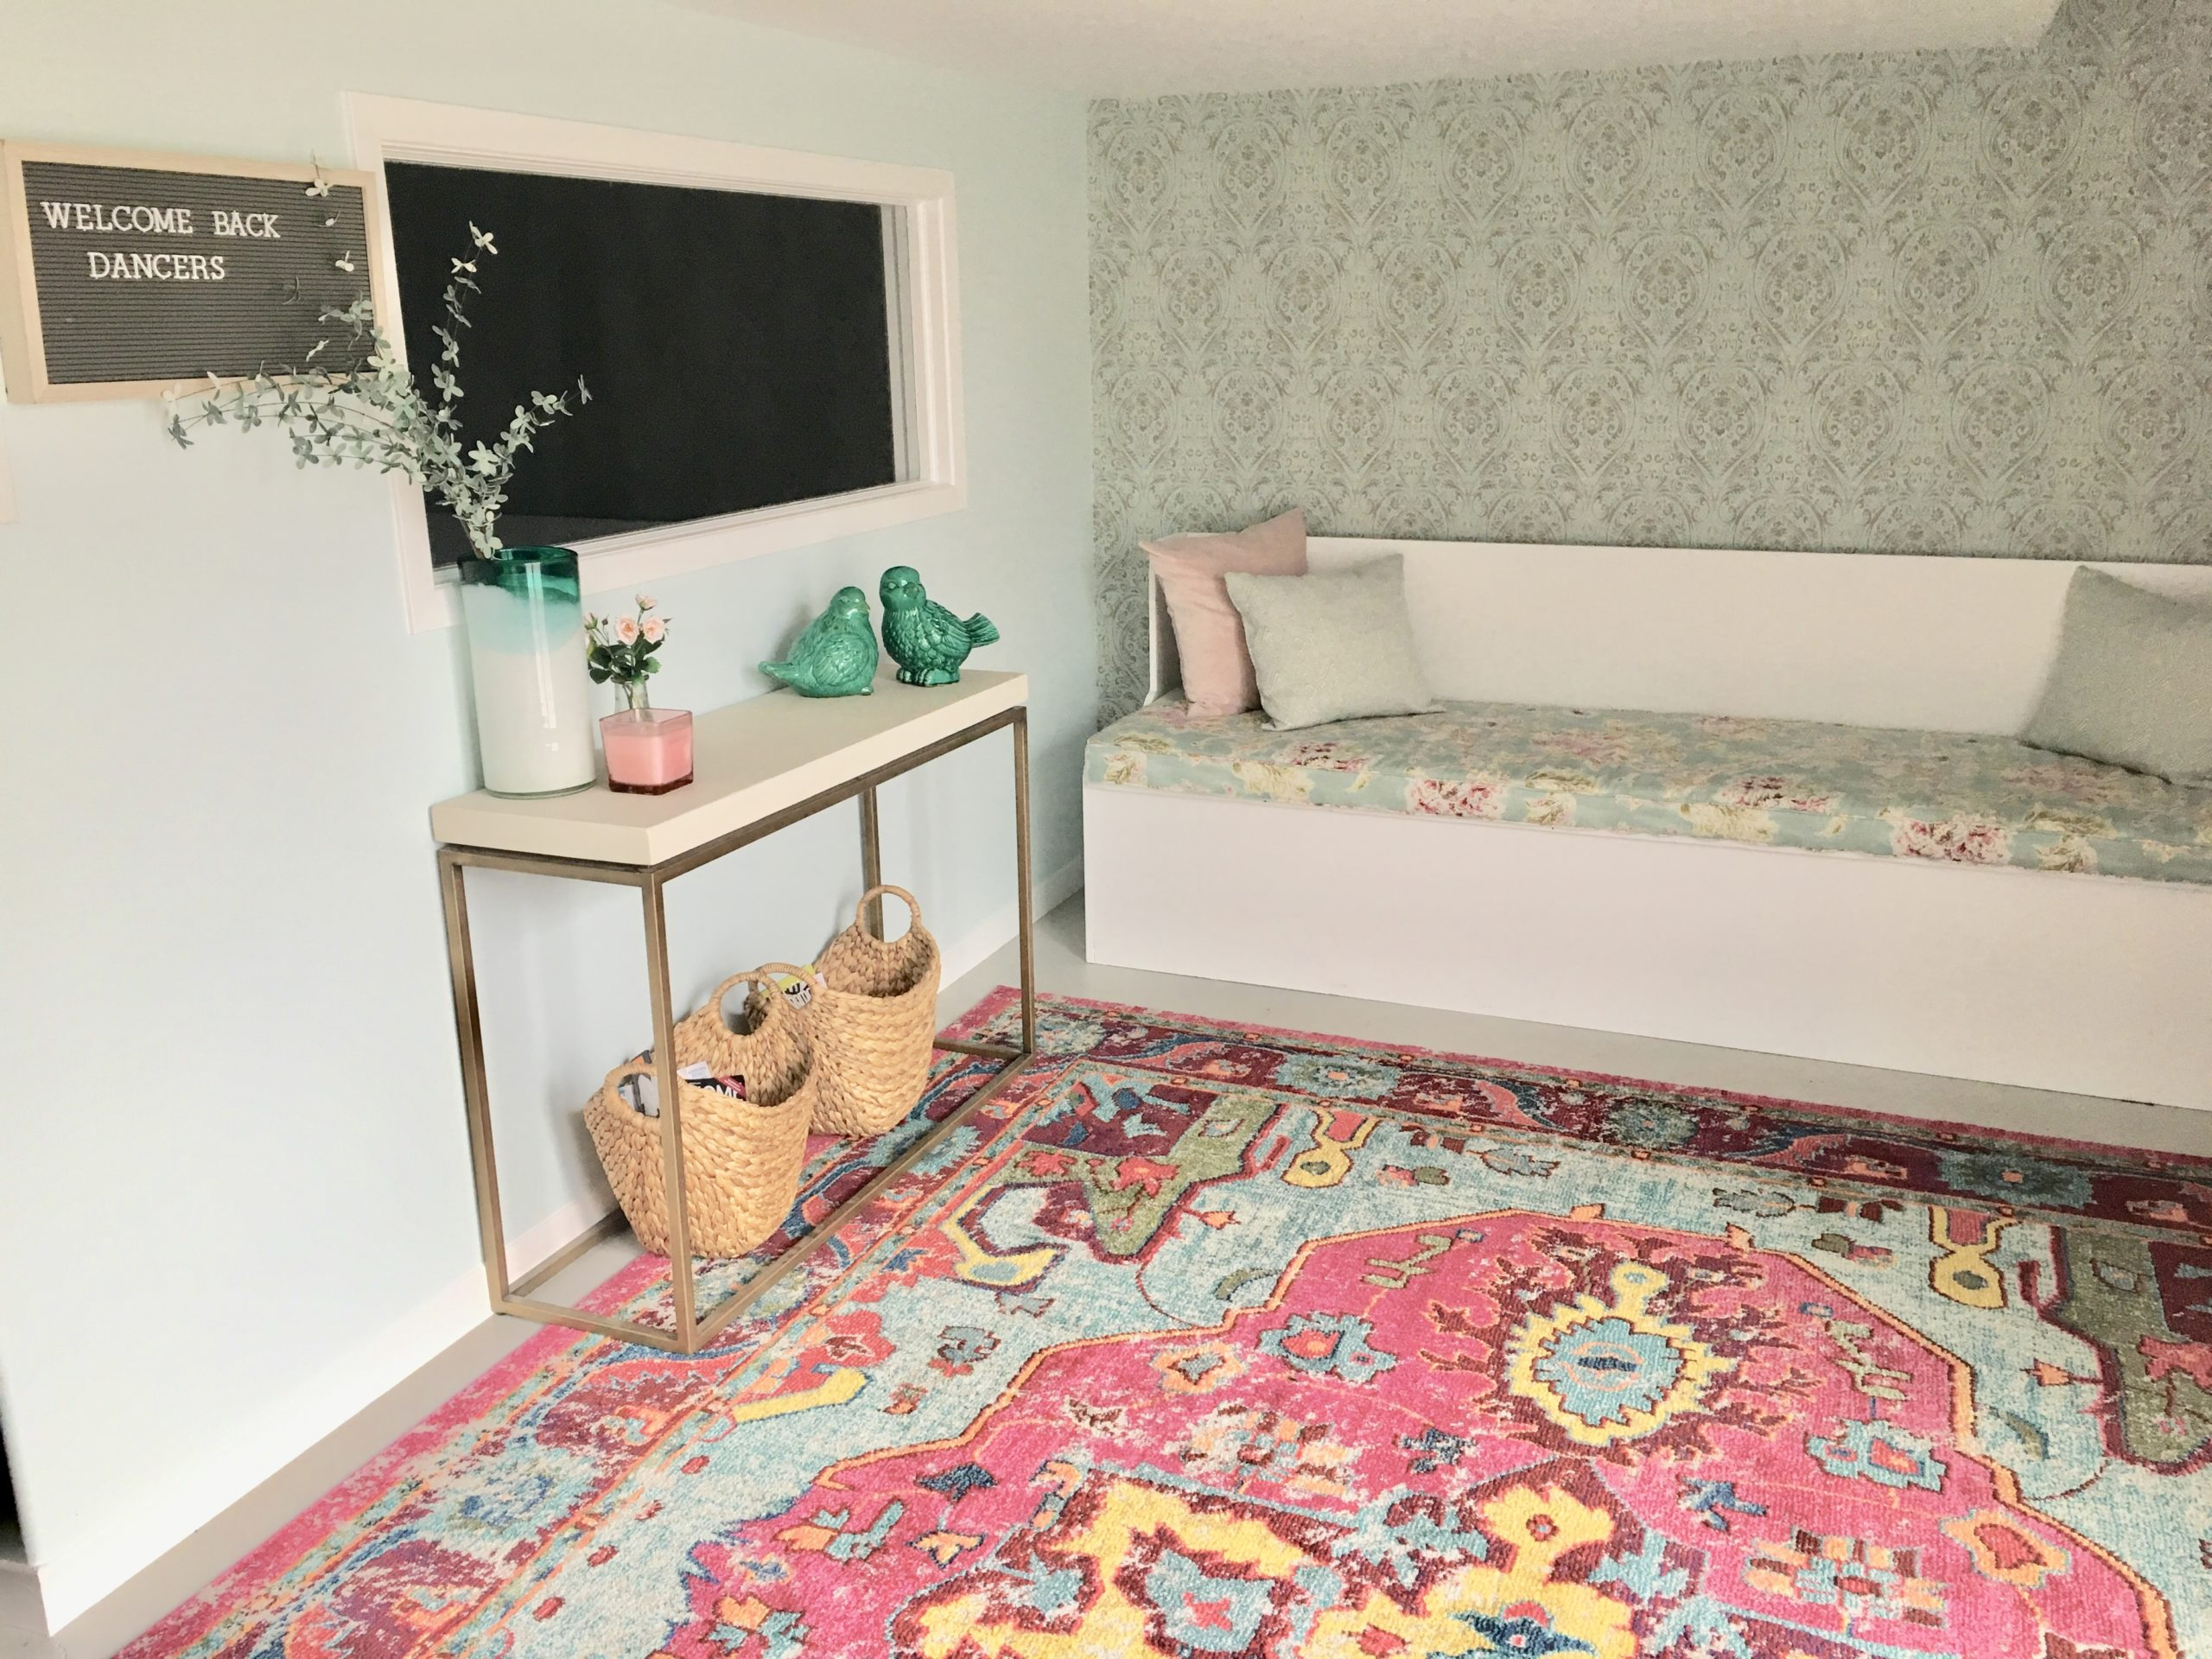 dance studio change room featuring built in bench and ornate rug